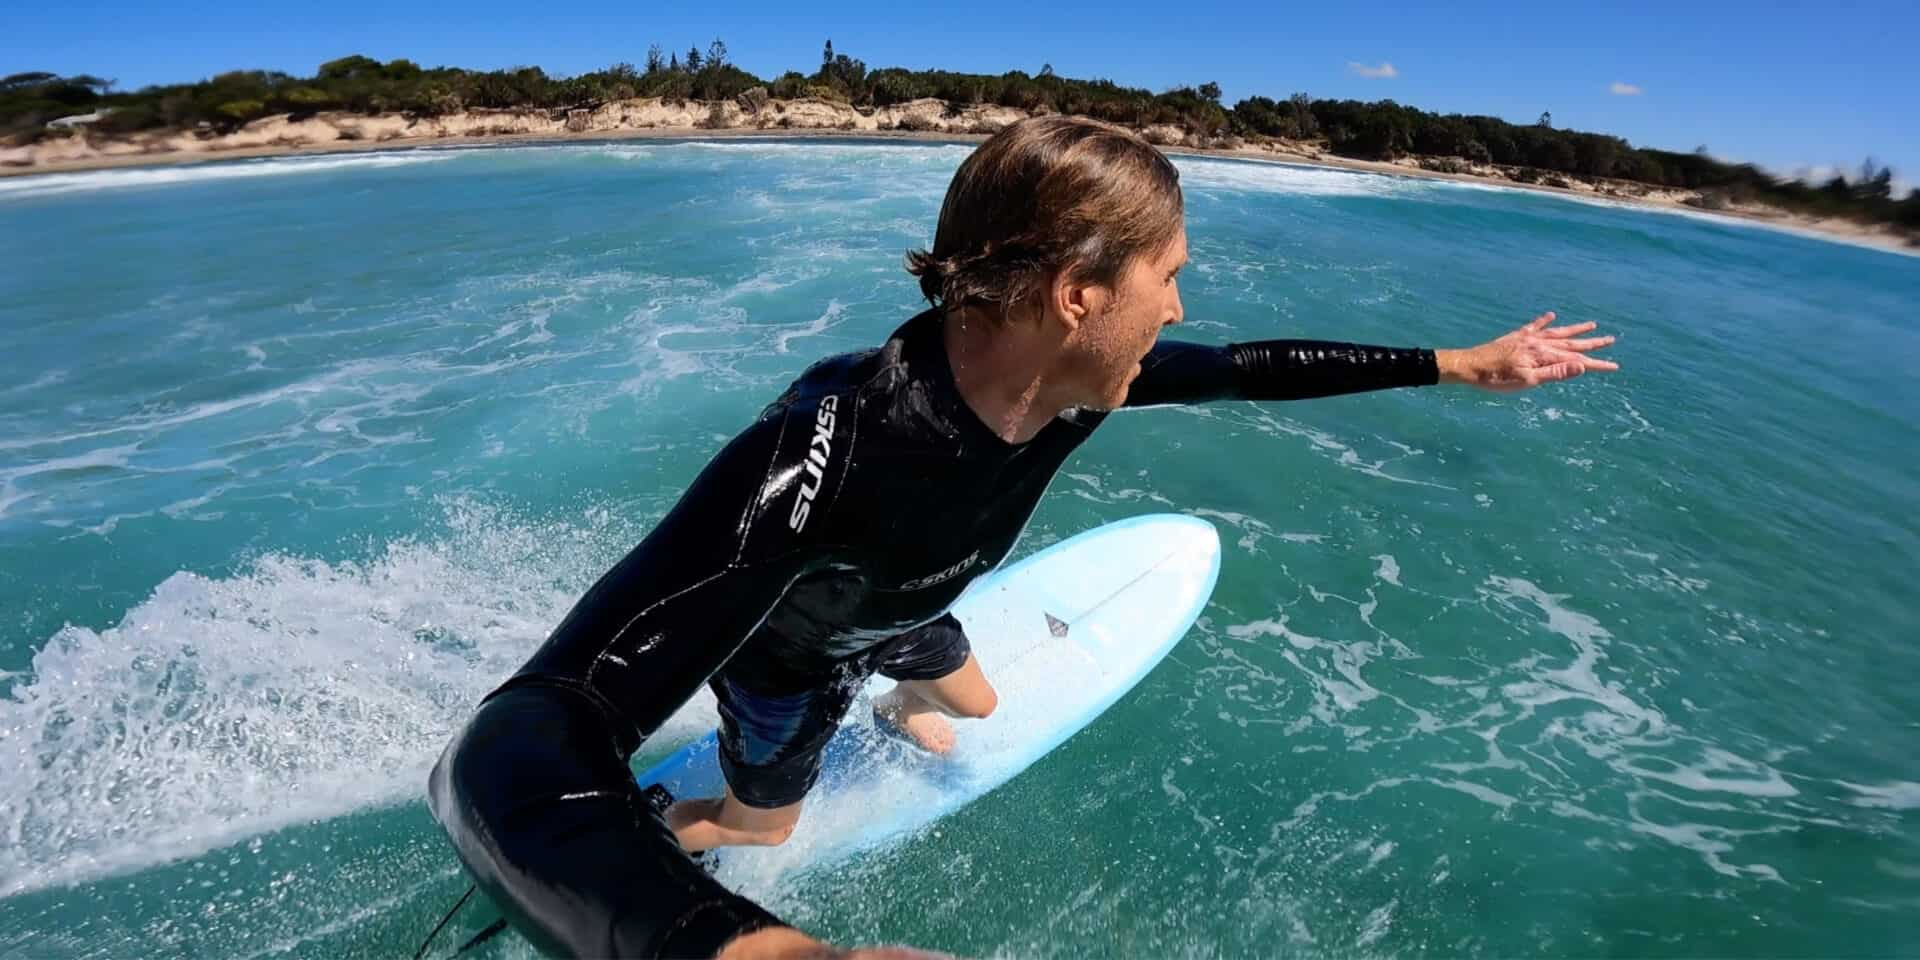 gopro surfing tips best gopro surfboard mounts surf mounts poles in water shooting